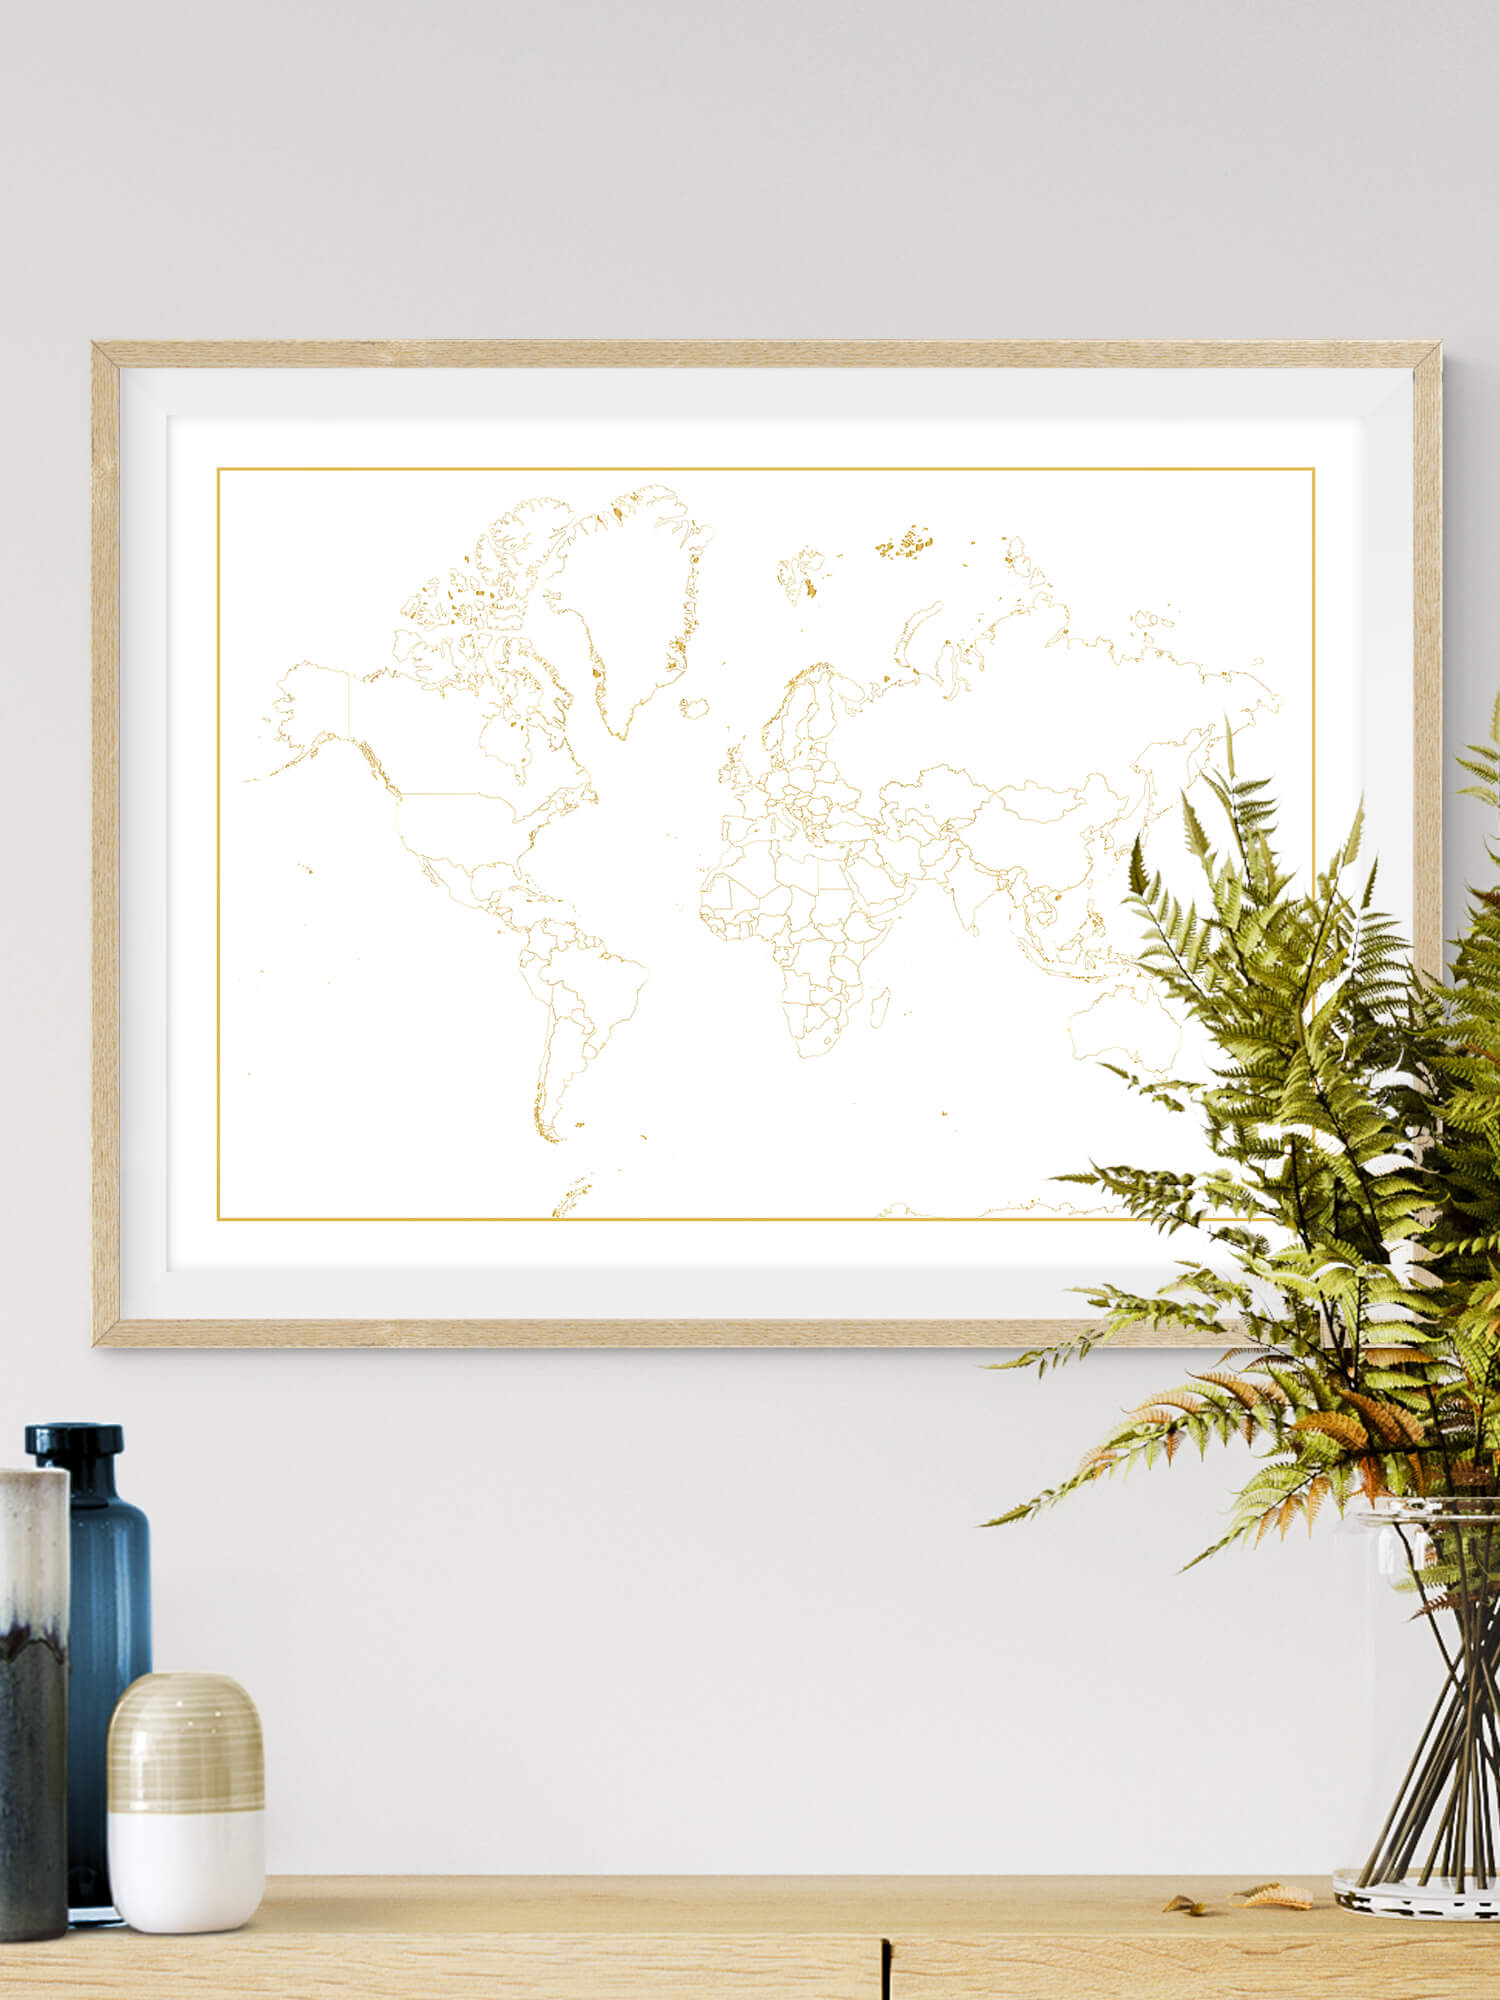 Golden World Map, Detailed World Map Print, World Map Poster, Travel Map